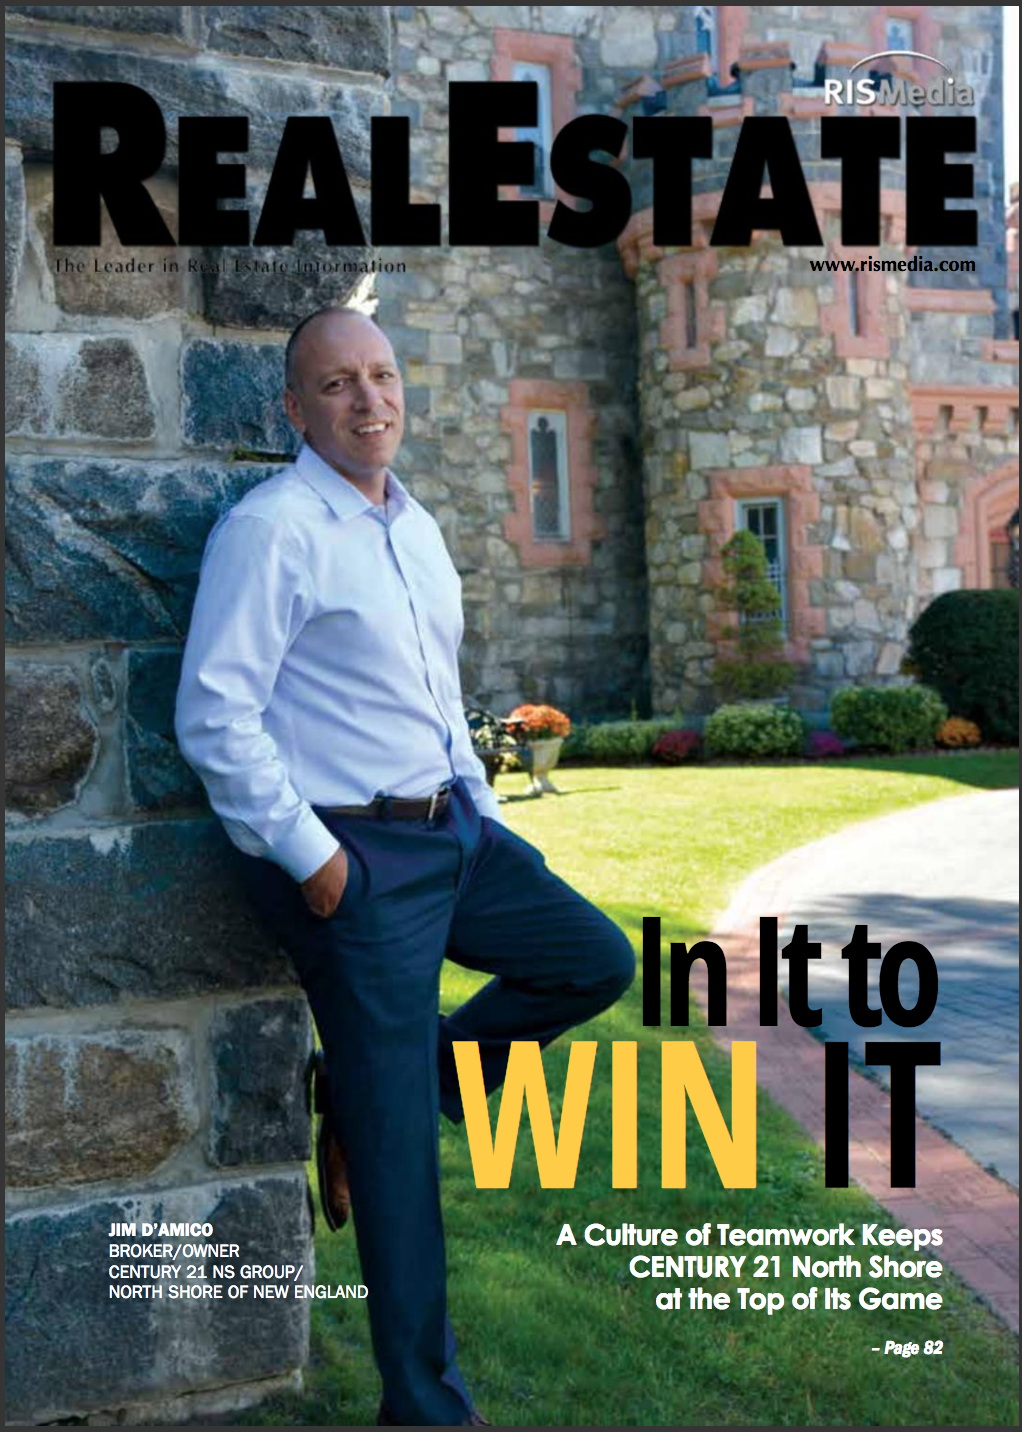 Jim D'Amico Makes Cover of RISMedia Magazine